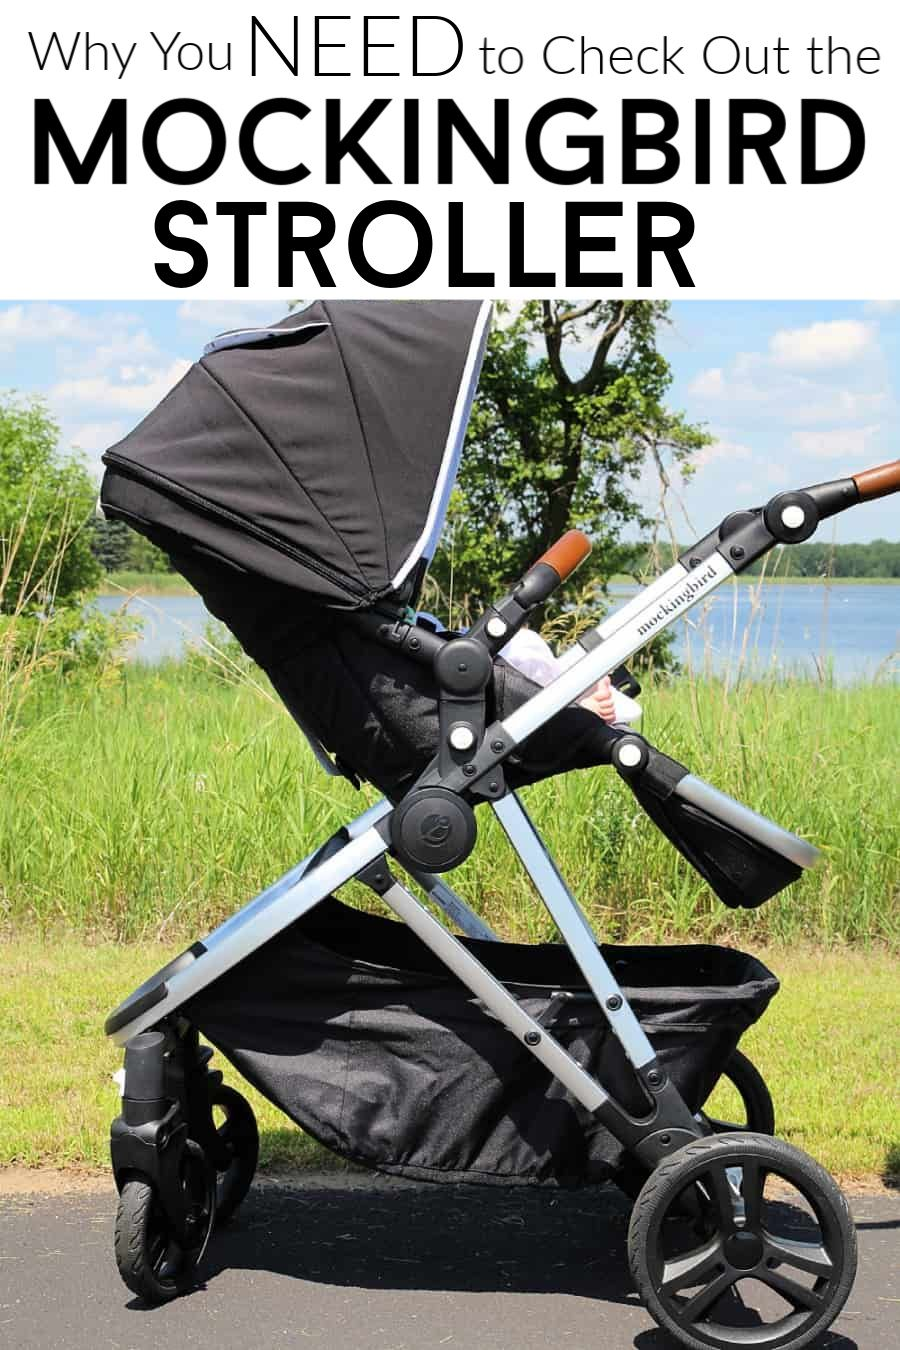 Check out the new Mockingbird Stroller! This full review